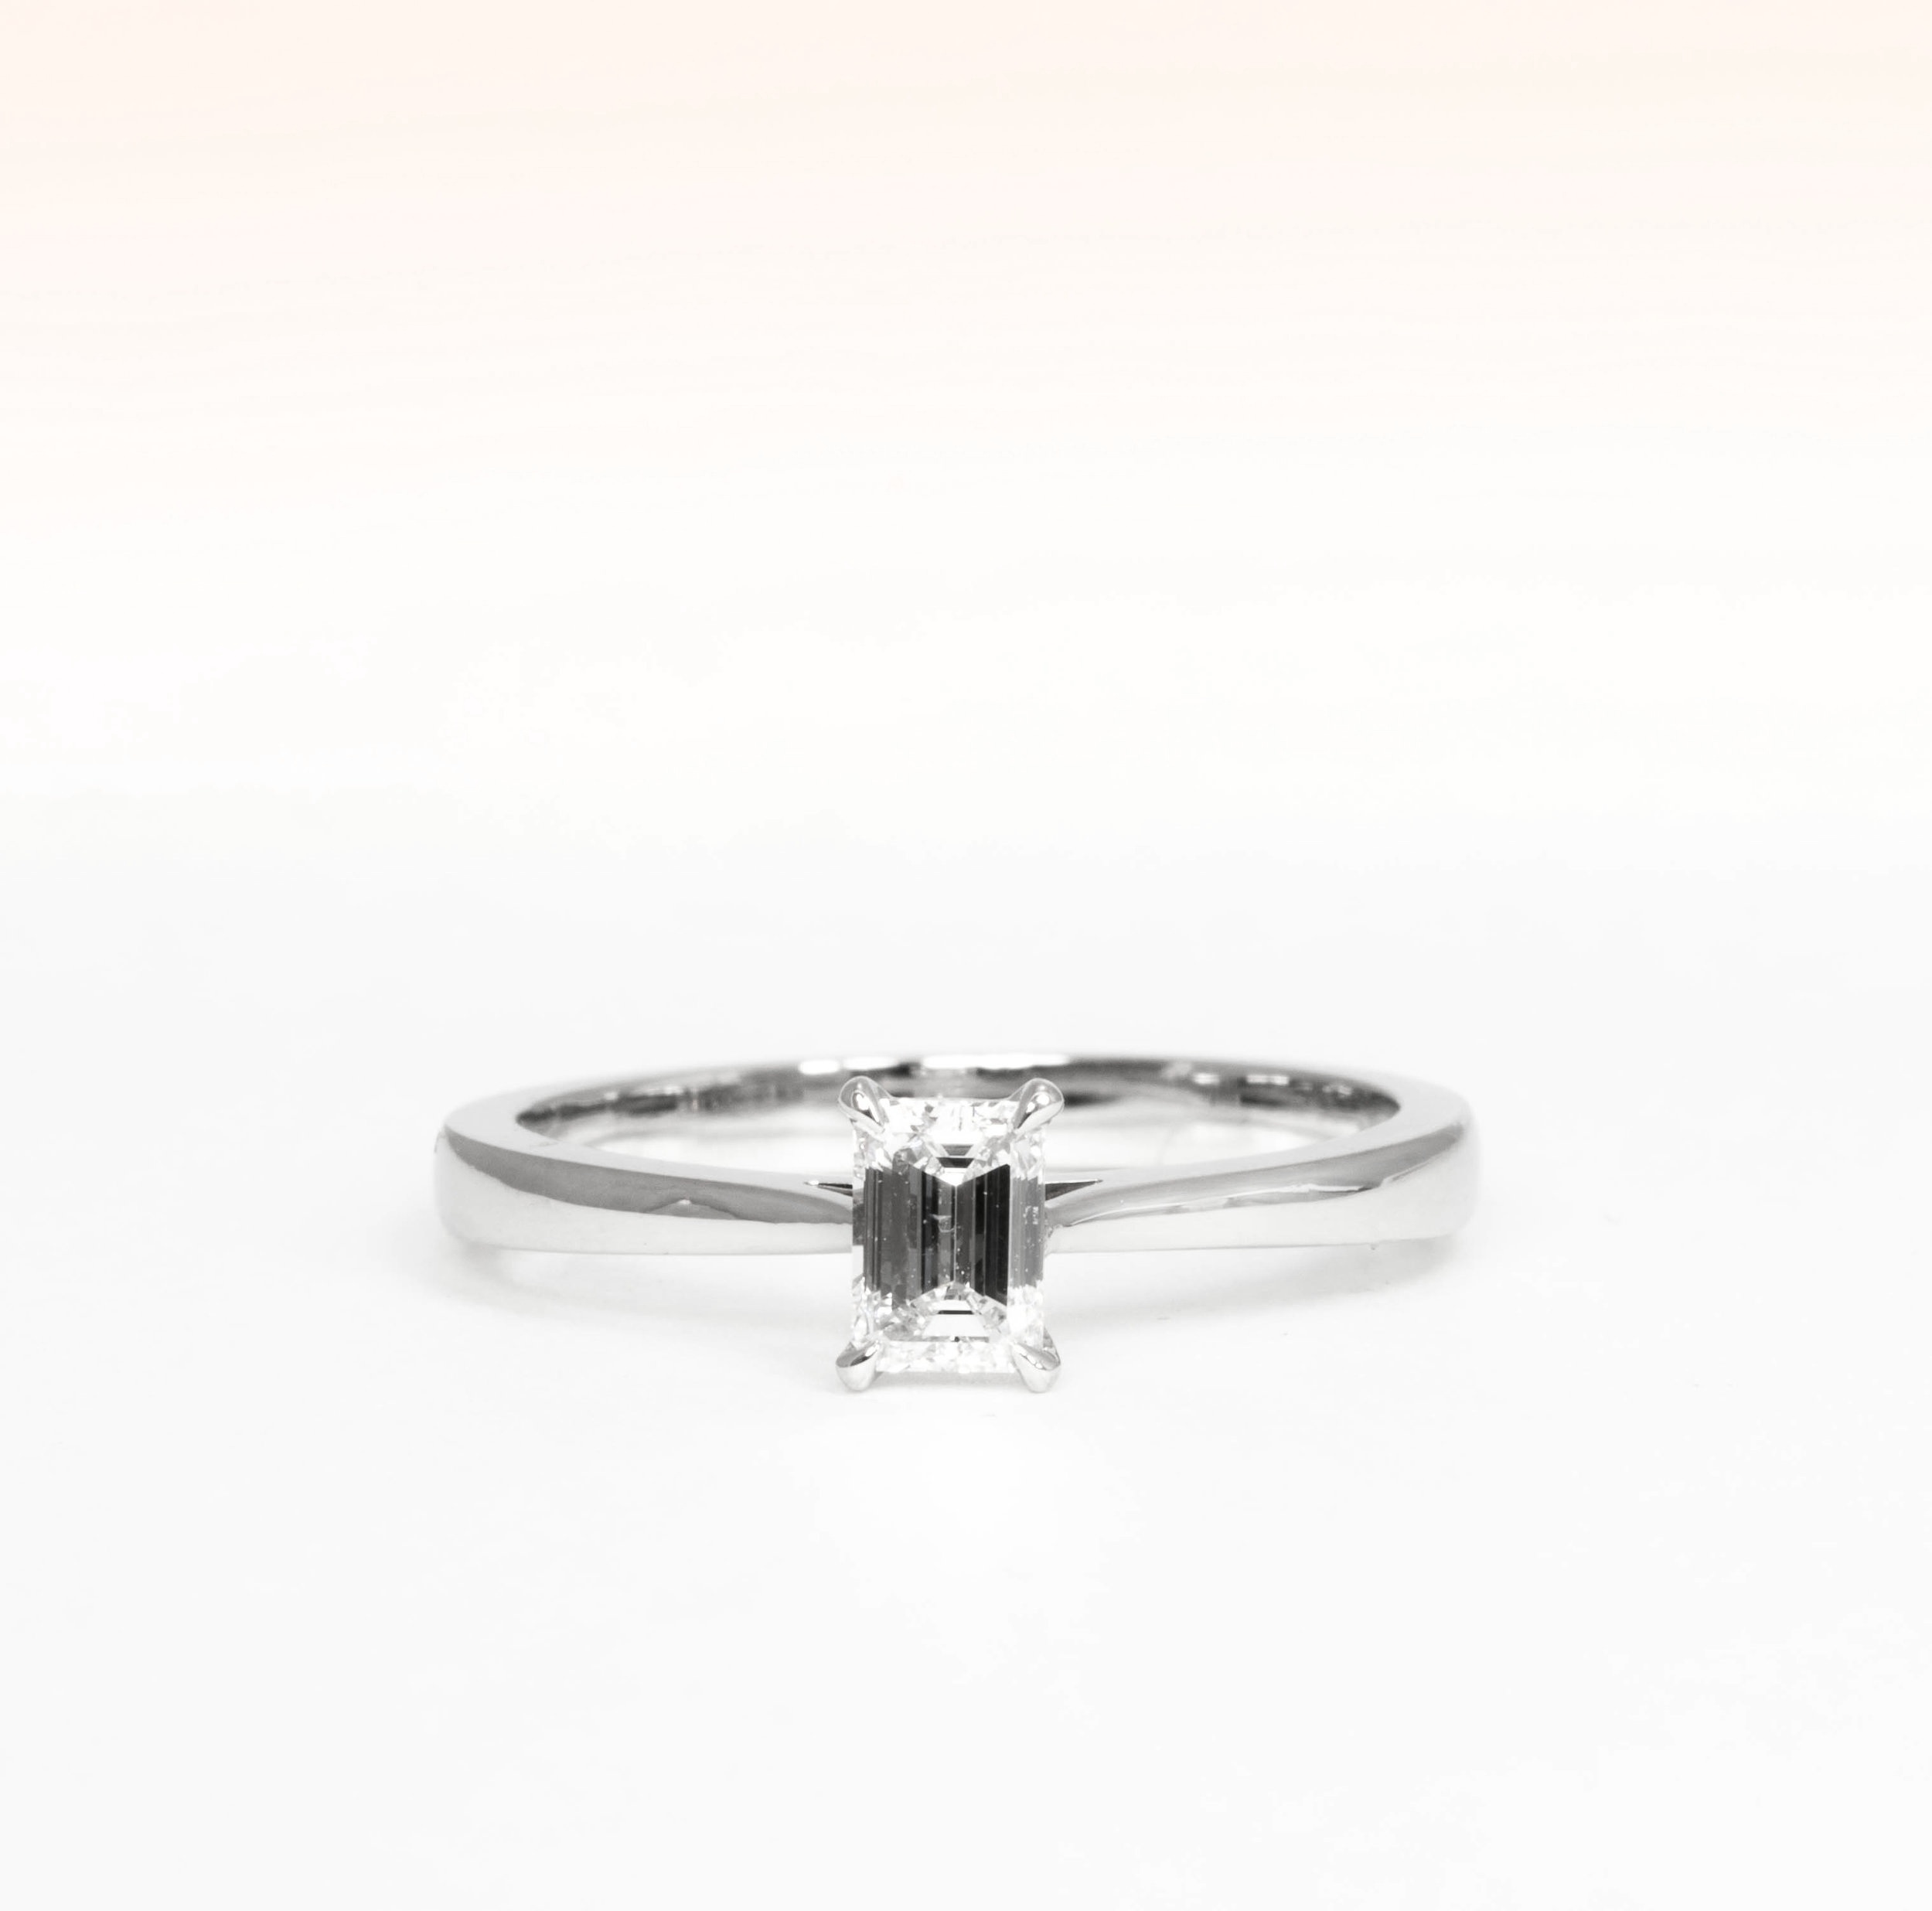 Copy of Platinum mounted classic emerald cut diamond solitaire. made in Chichester, England.